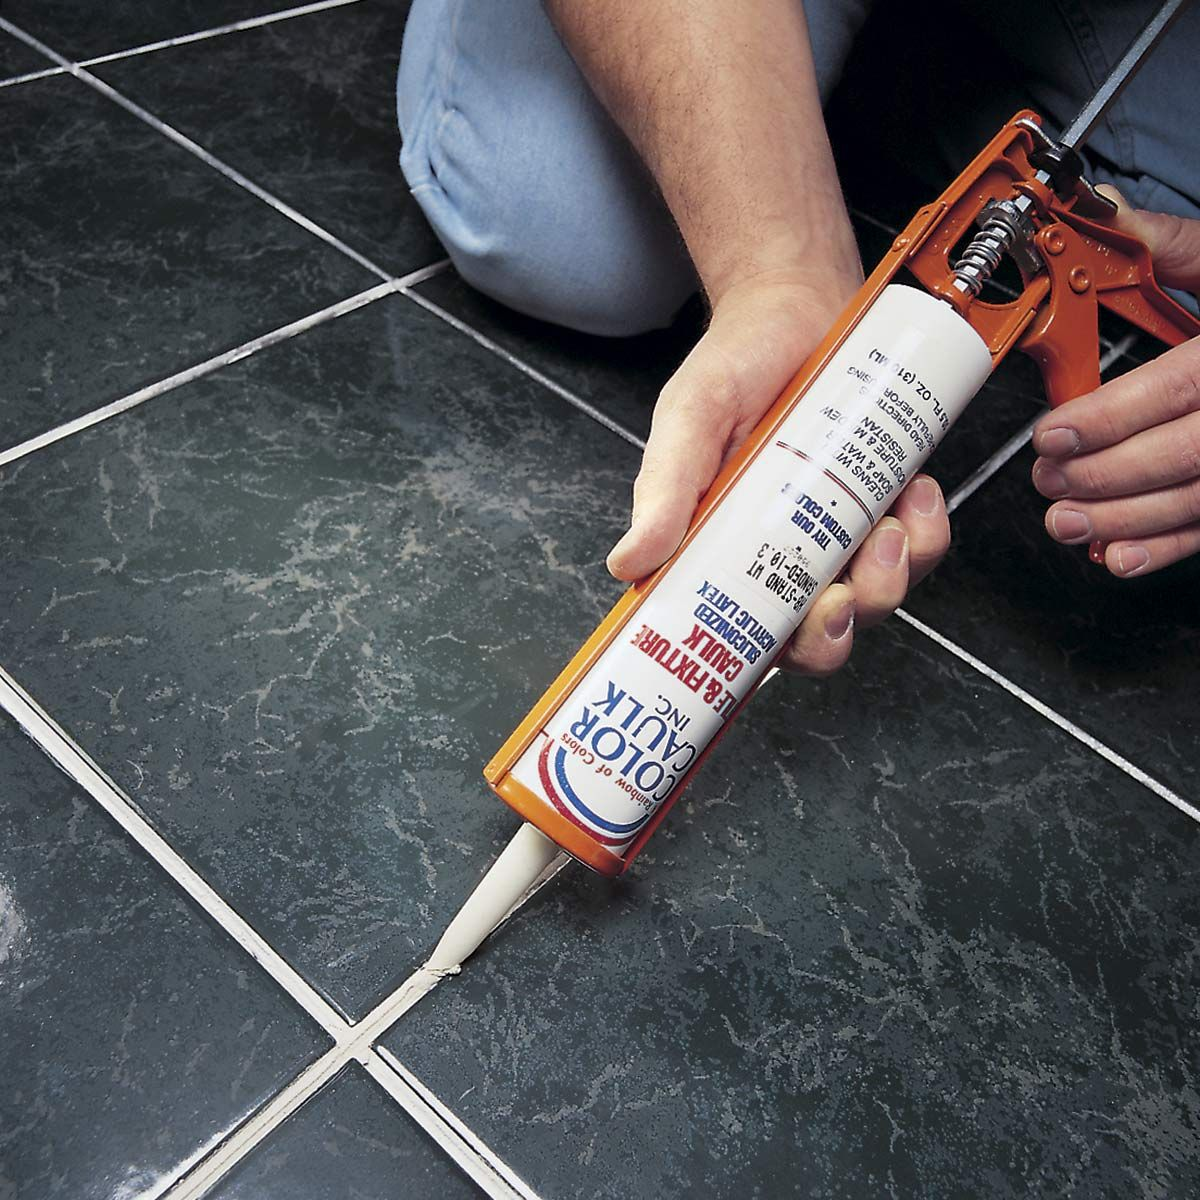 Remplacer Un Carreau De Carrelage 100 home repairs you don't need to call a pro for | comment